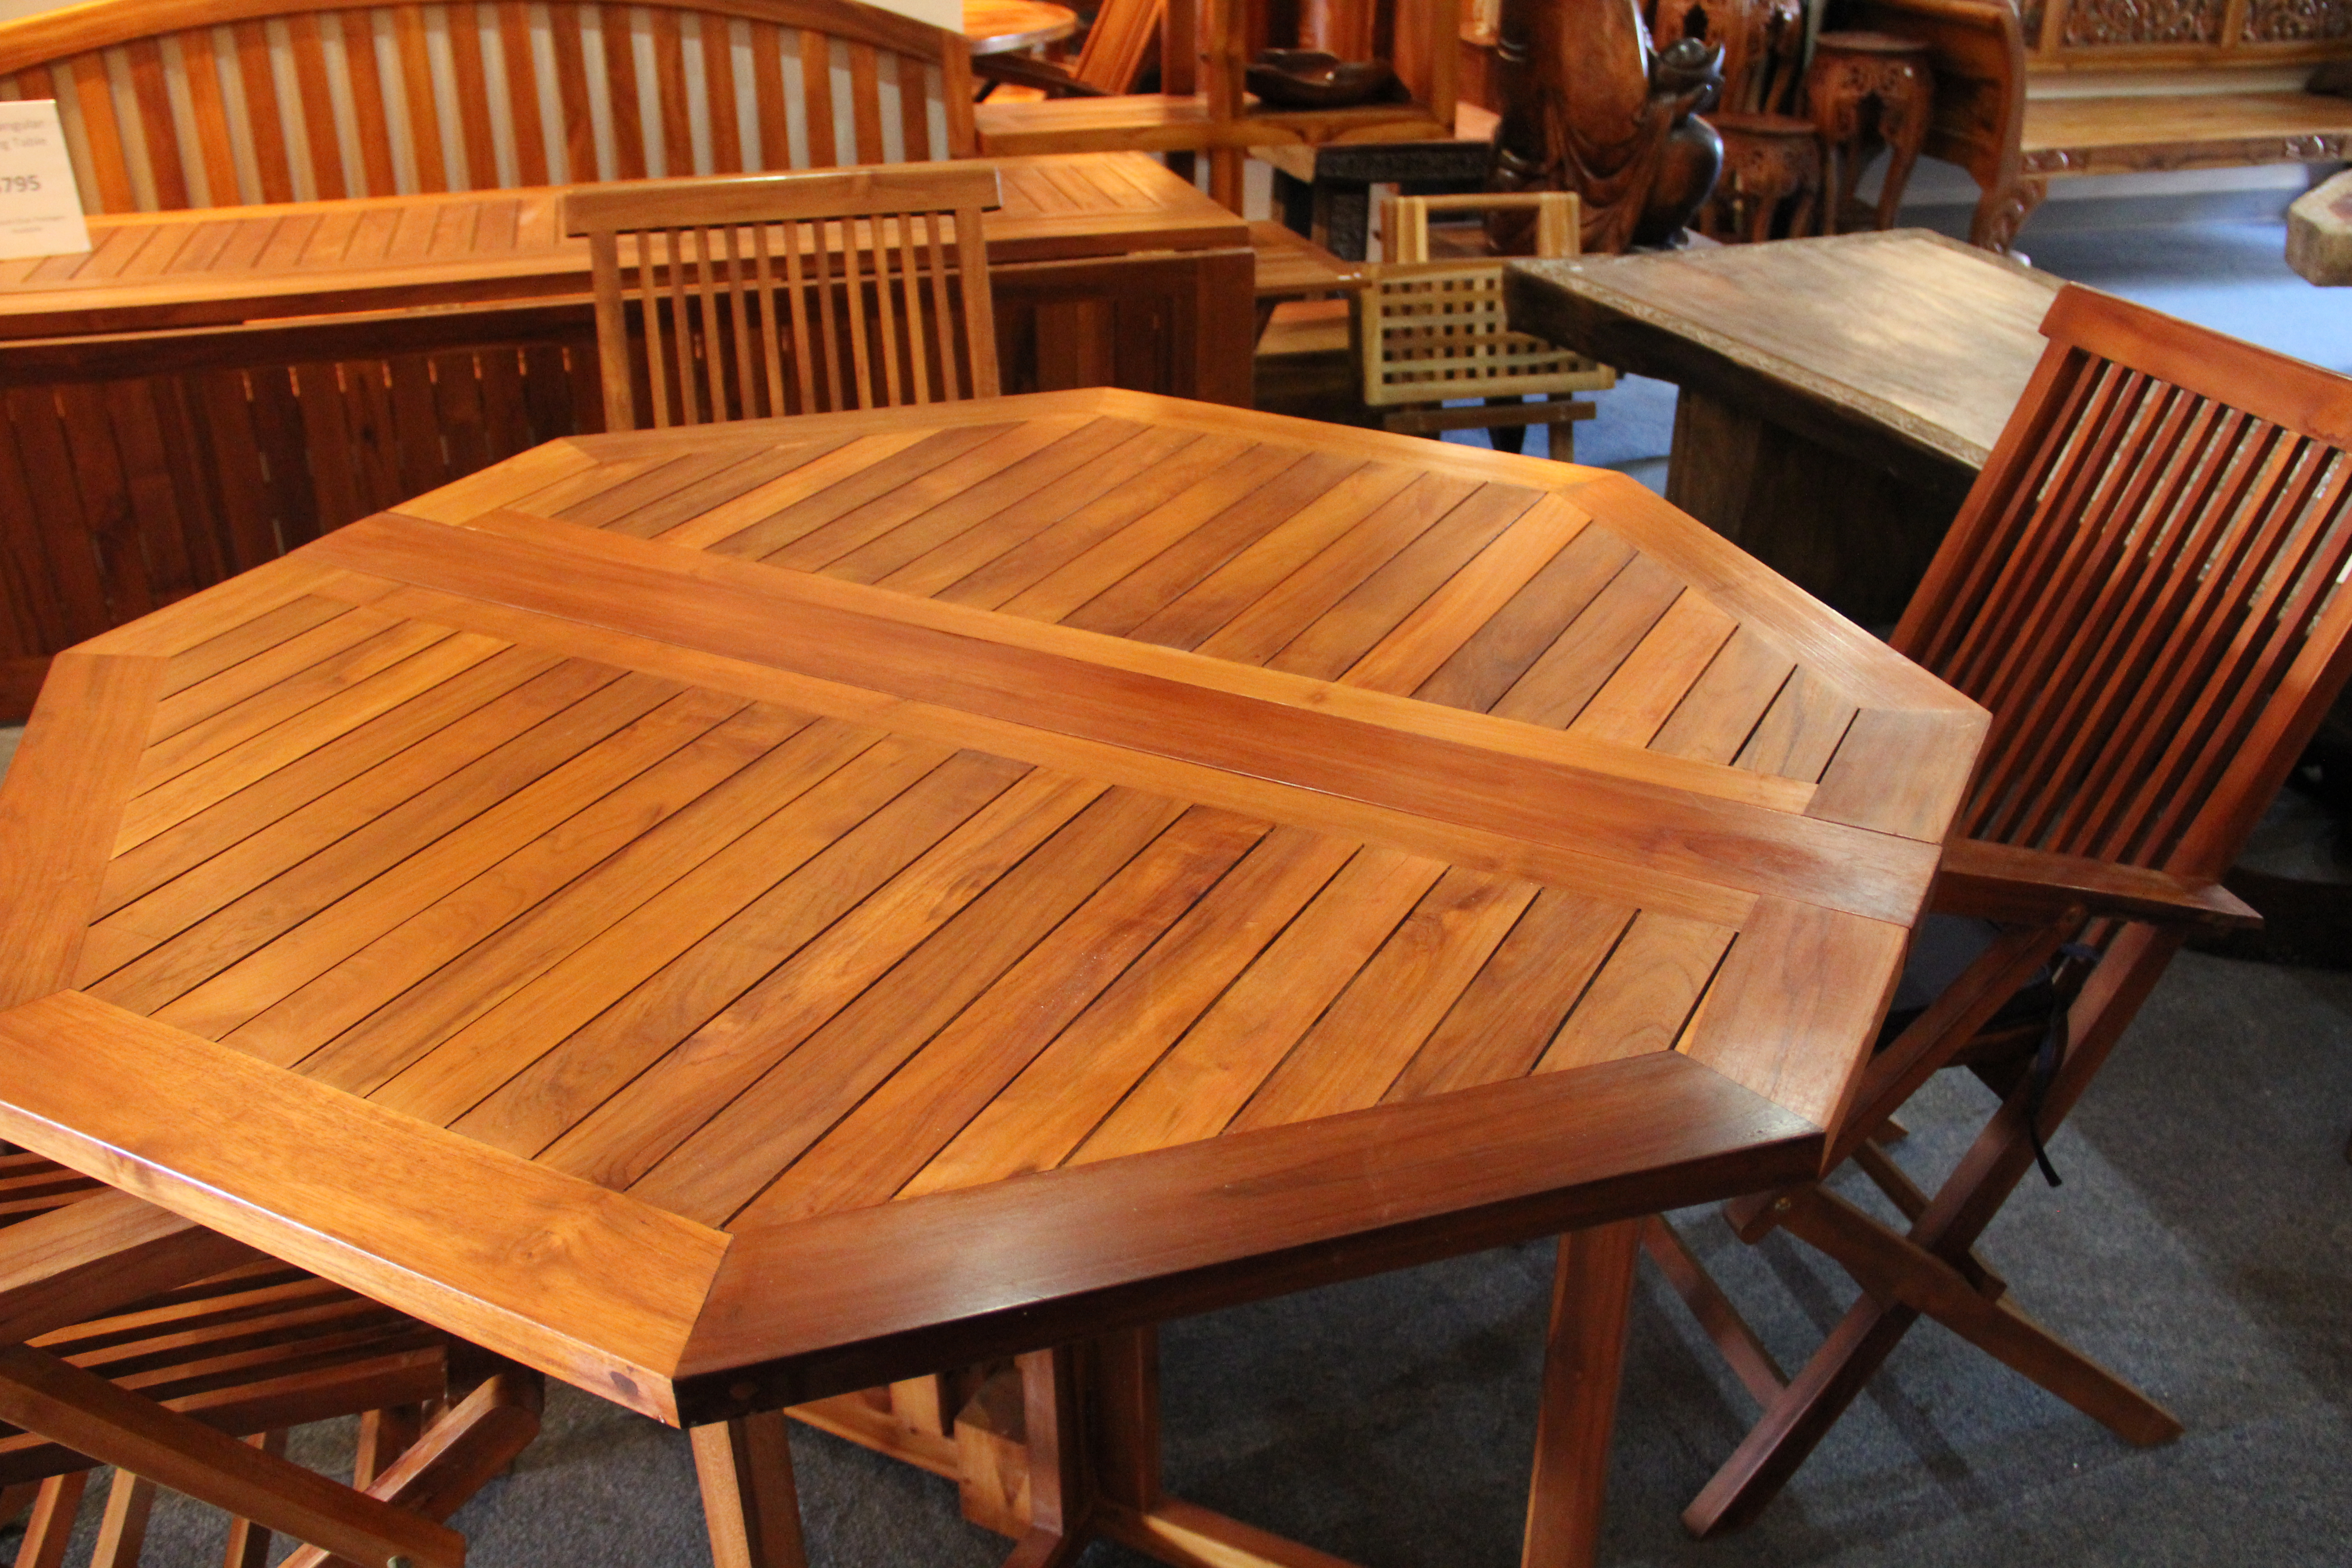 Octagonal Folding Panel Table